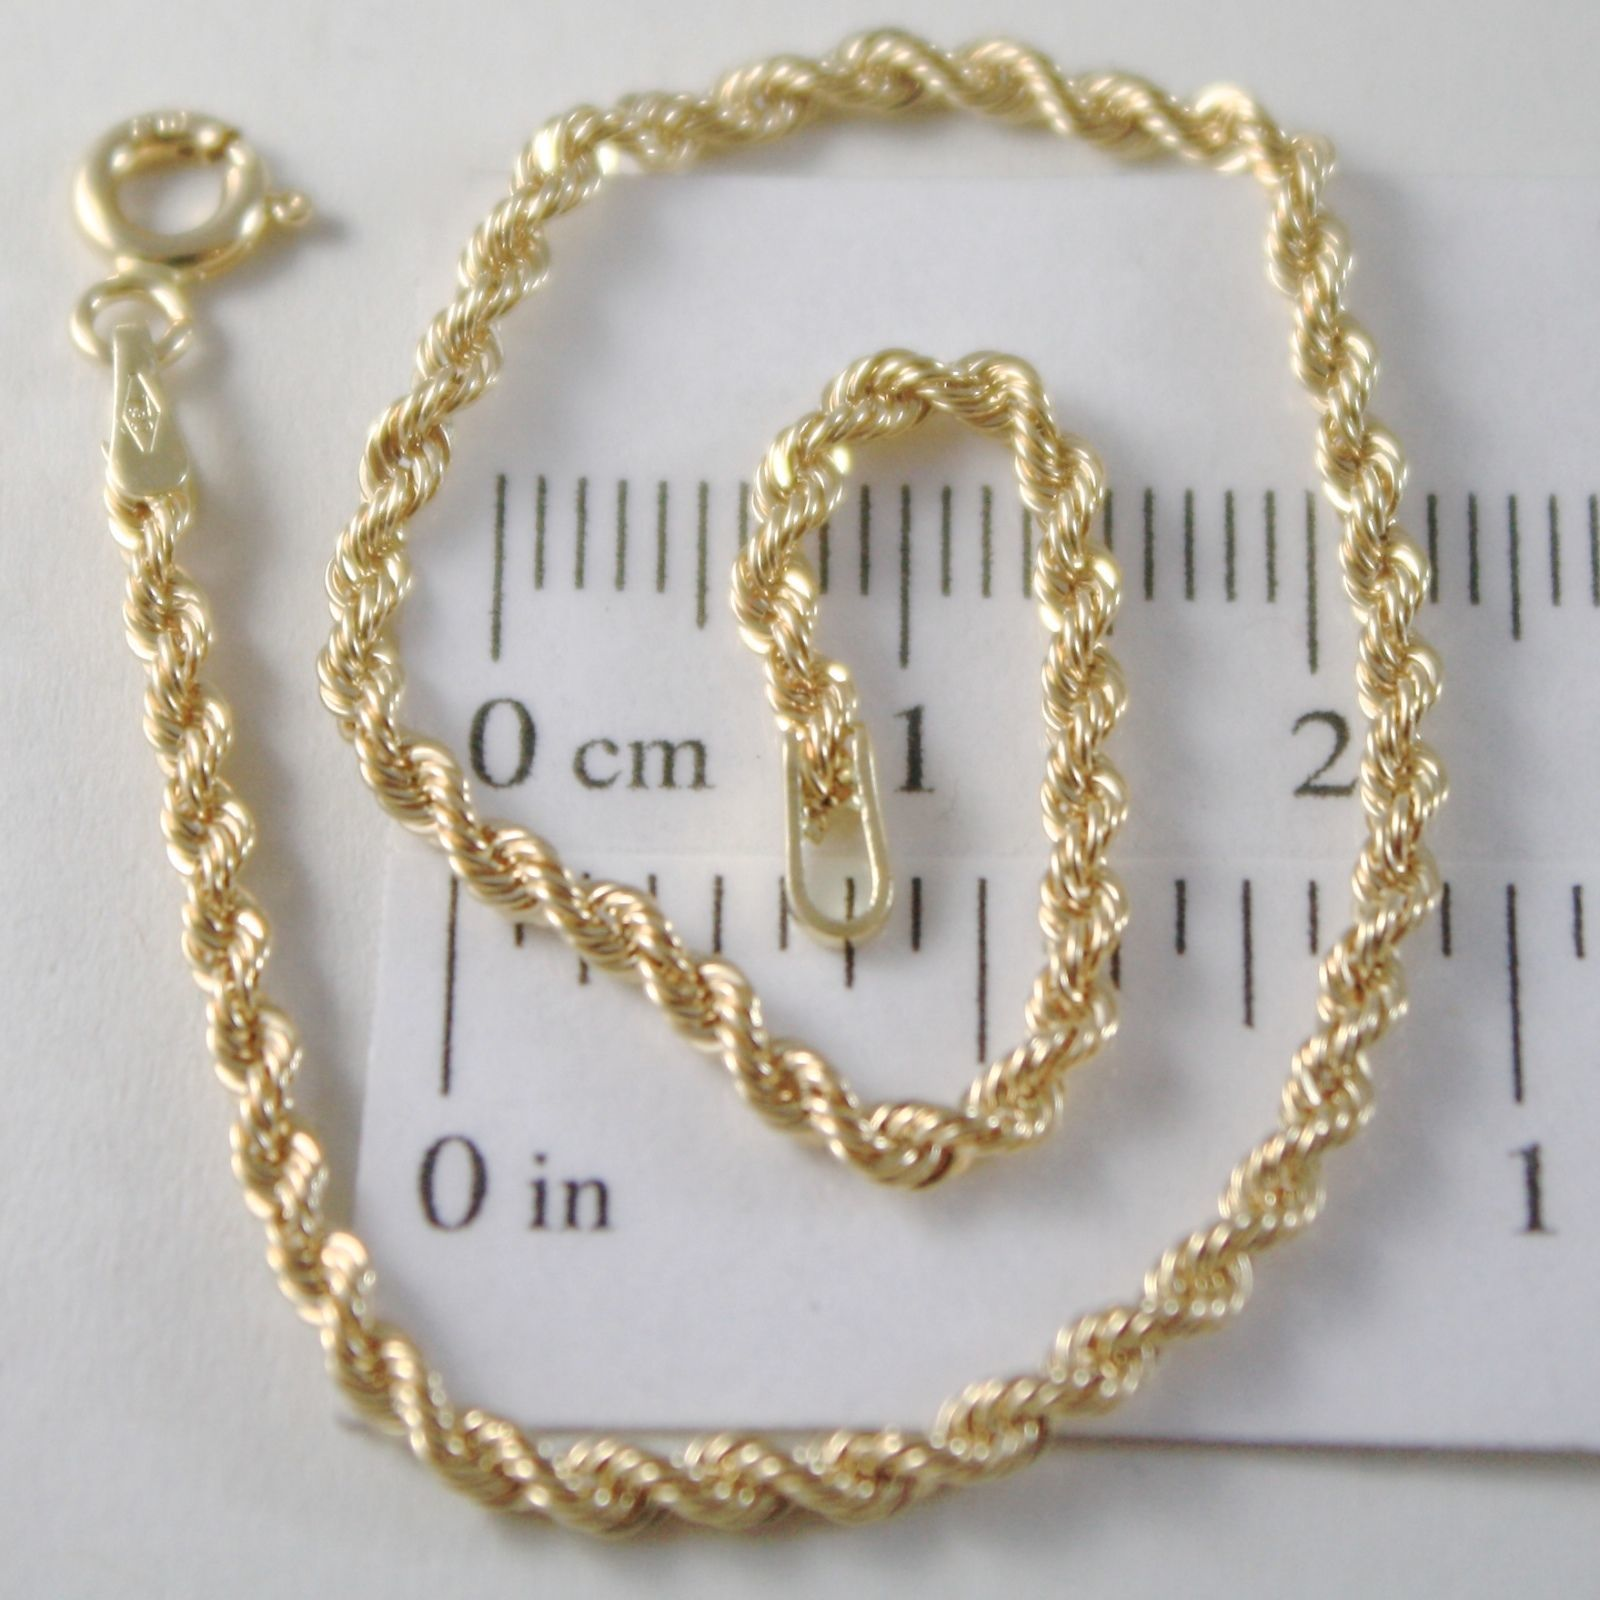 BRACELET YELLOW GOLD 0,5 WHITE, 750 18K WOVEN ROPE 18.5 CM X 2.5 MM, ITALY